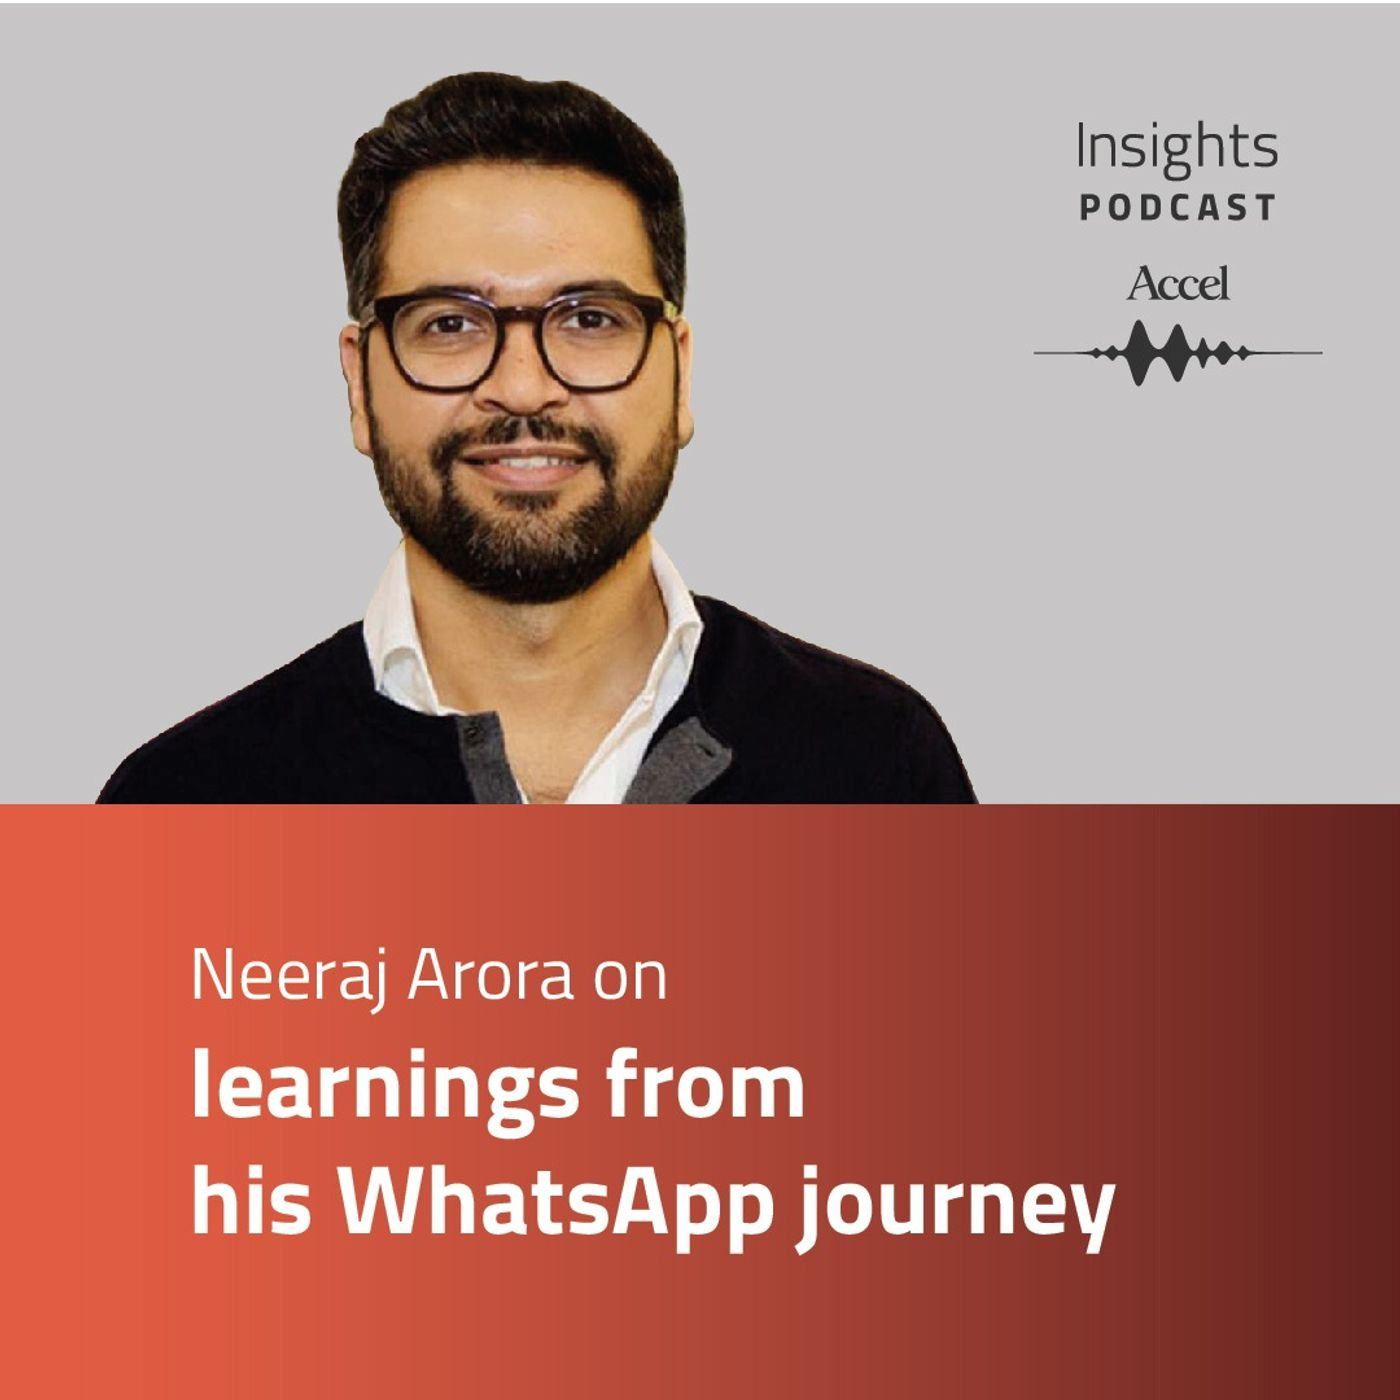 INSIGHTS #53 - Neeraj Arora on learnings from his WhatsApp journey